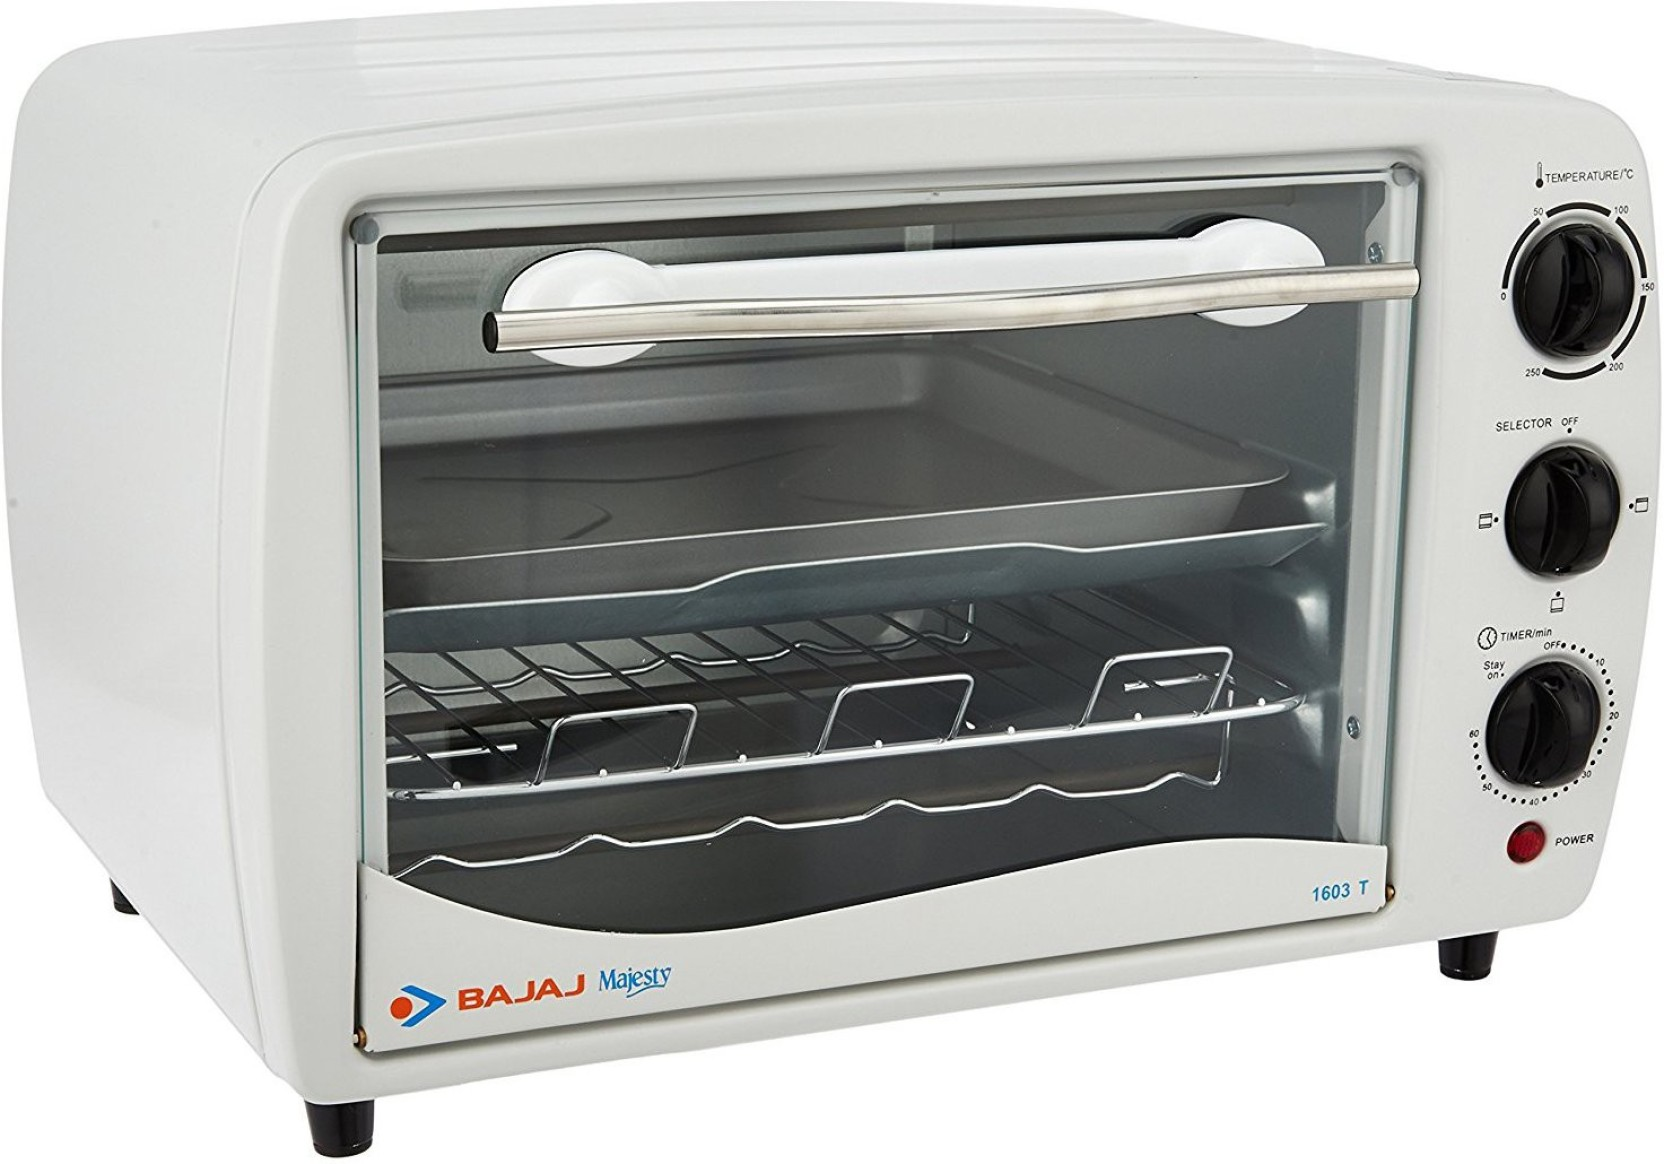 Bajaj 16 Litre Majesty 1603t Oven Toaster Grill Otg Price In India Fossil Es4047 Es 4047 Original Add To Cart